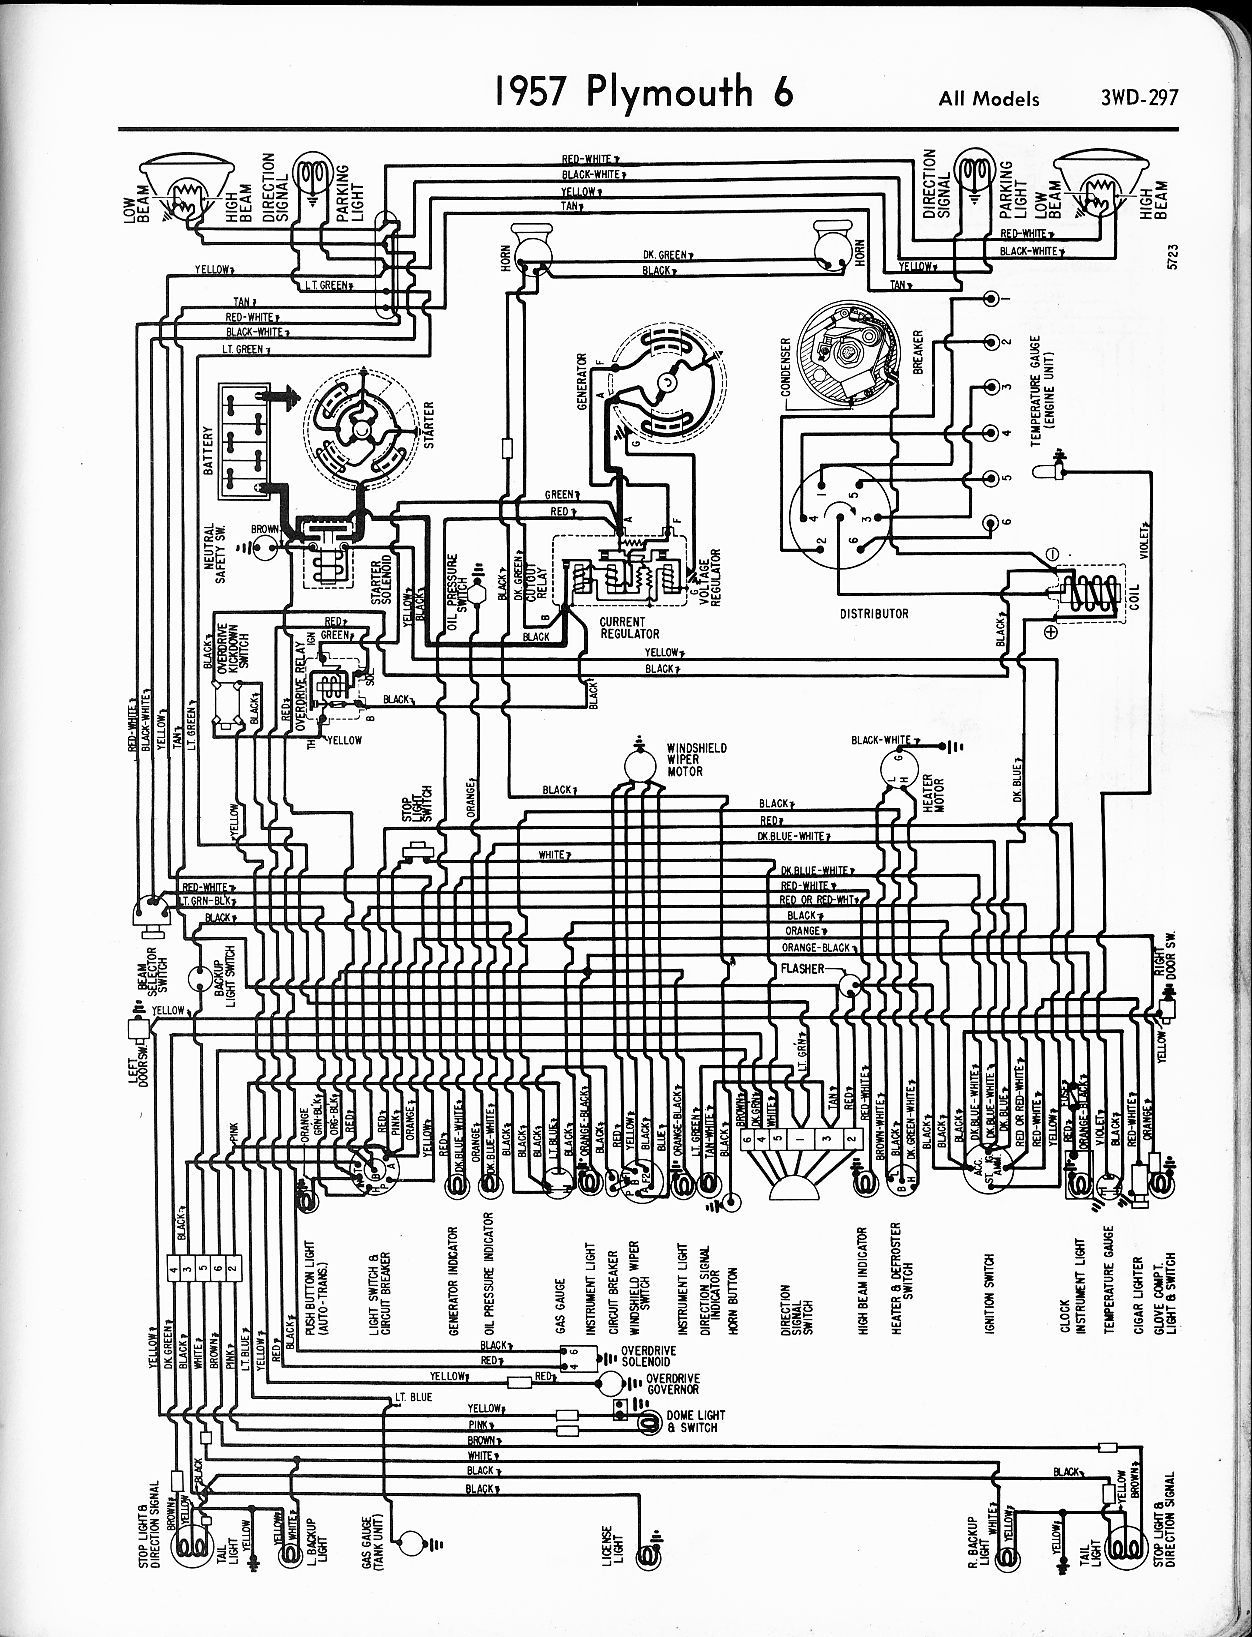 [WRG-9367] 79 Plymouth Volare Wiring Diagram